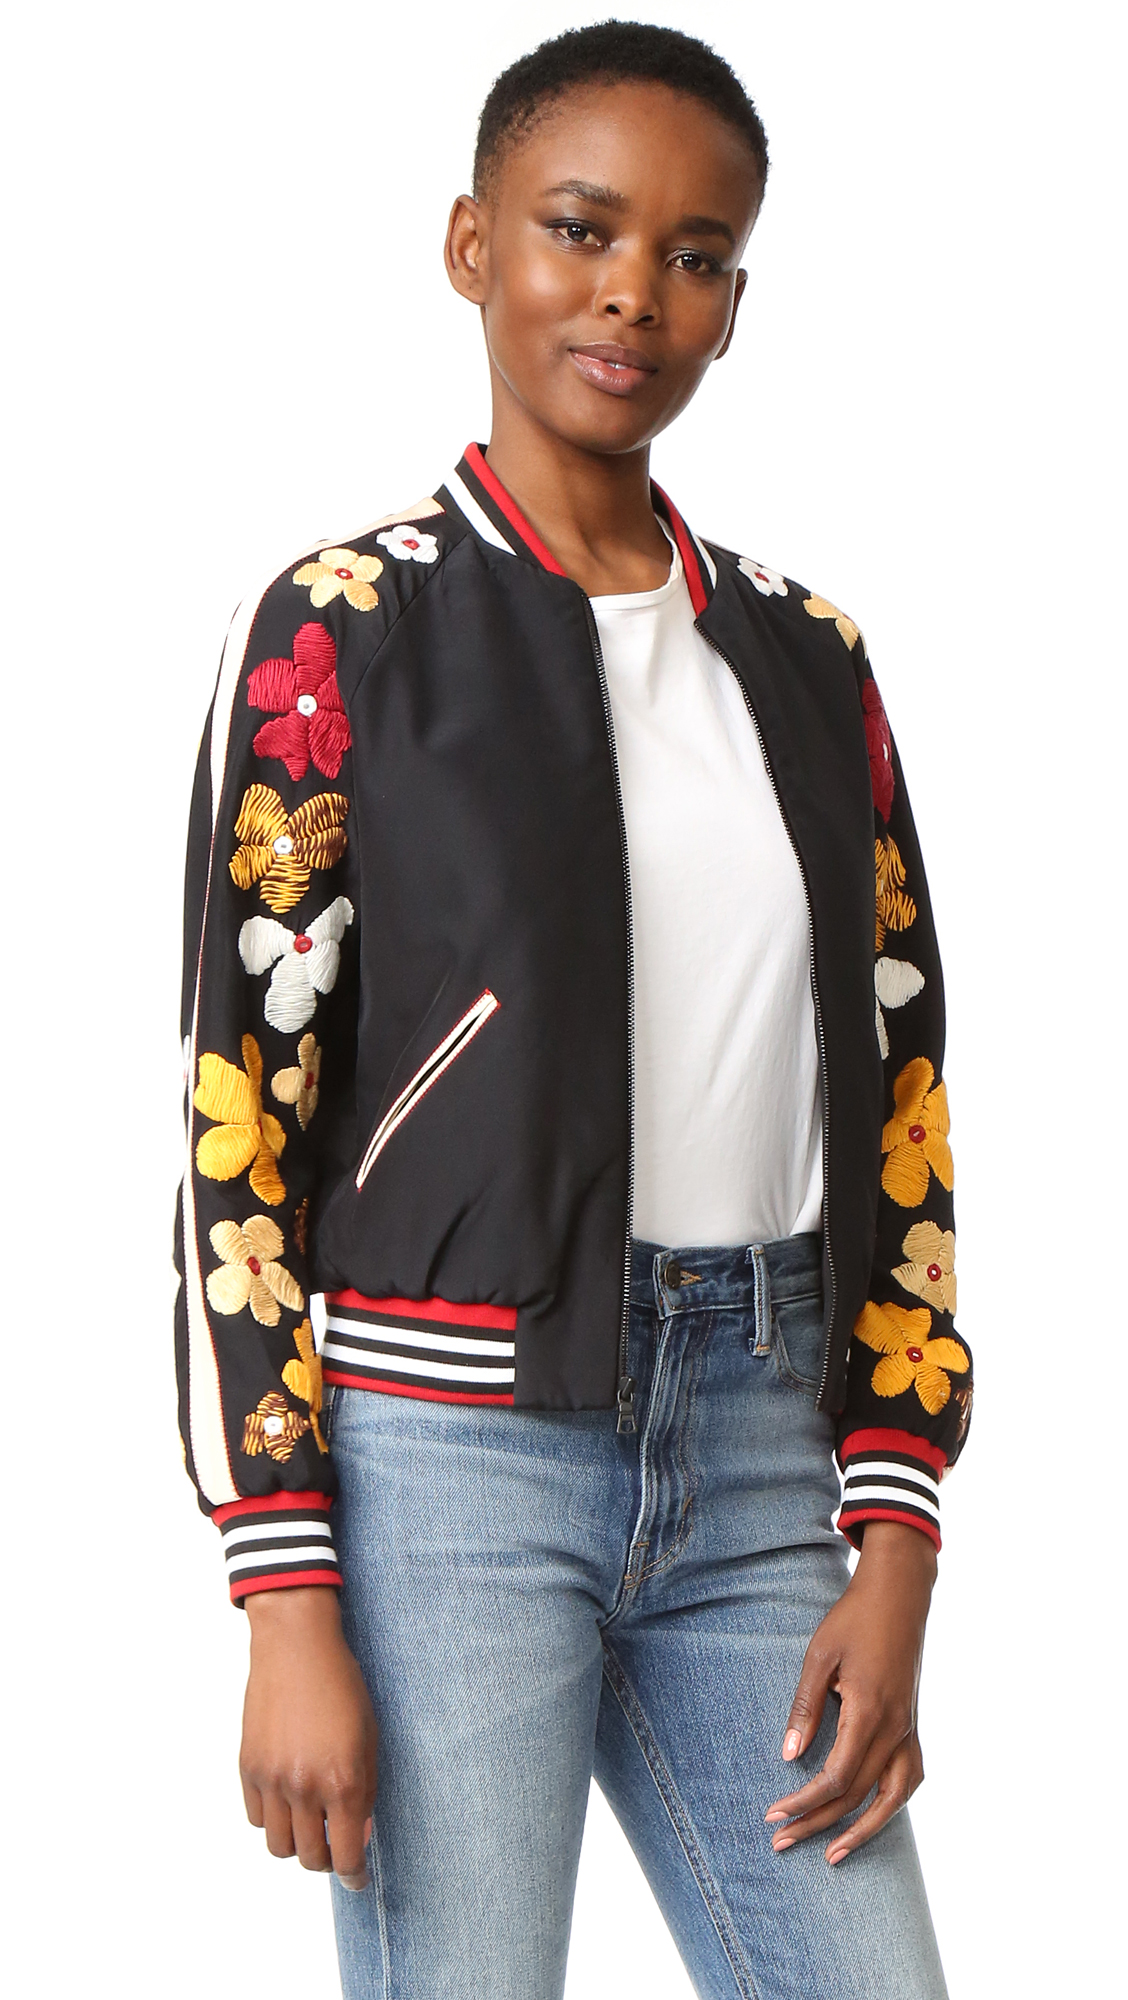 Alice + Olivia Tony Embellished Sleeve Cropped Bomber - Black Multi at Shopbop